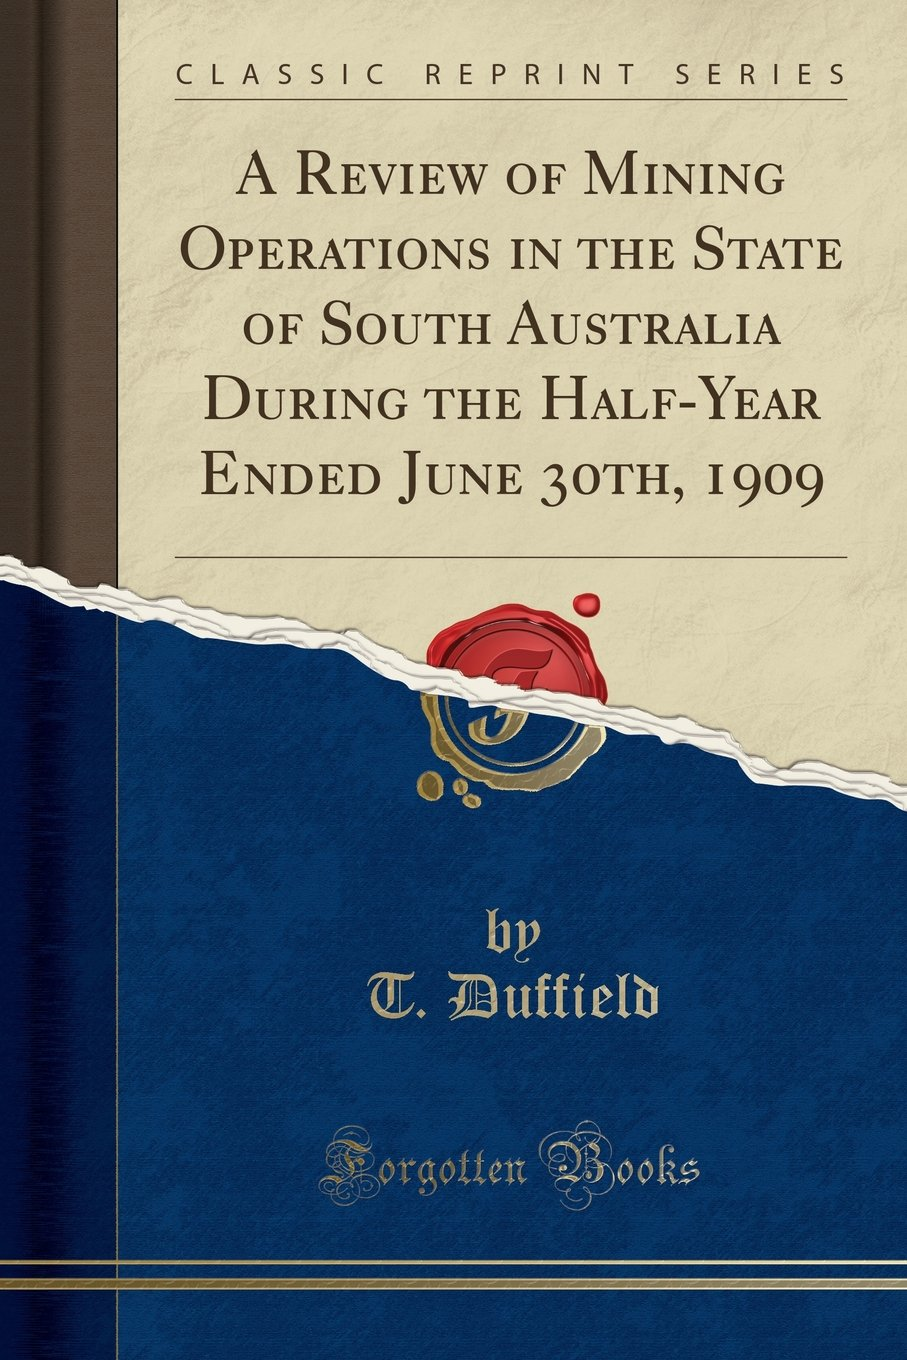 Read Online A Review of Mining Operations in the State of South Australia During the Half-Year Ended June 30th, 1909 (Classic Reprint) ebook